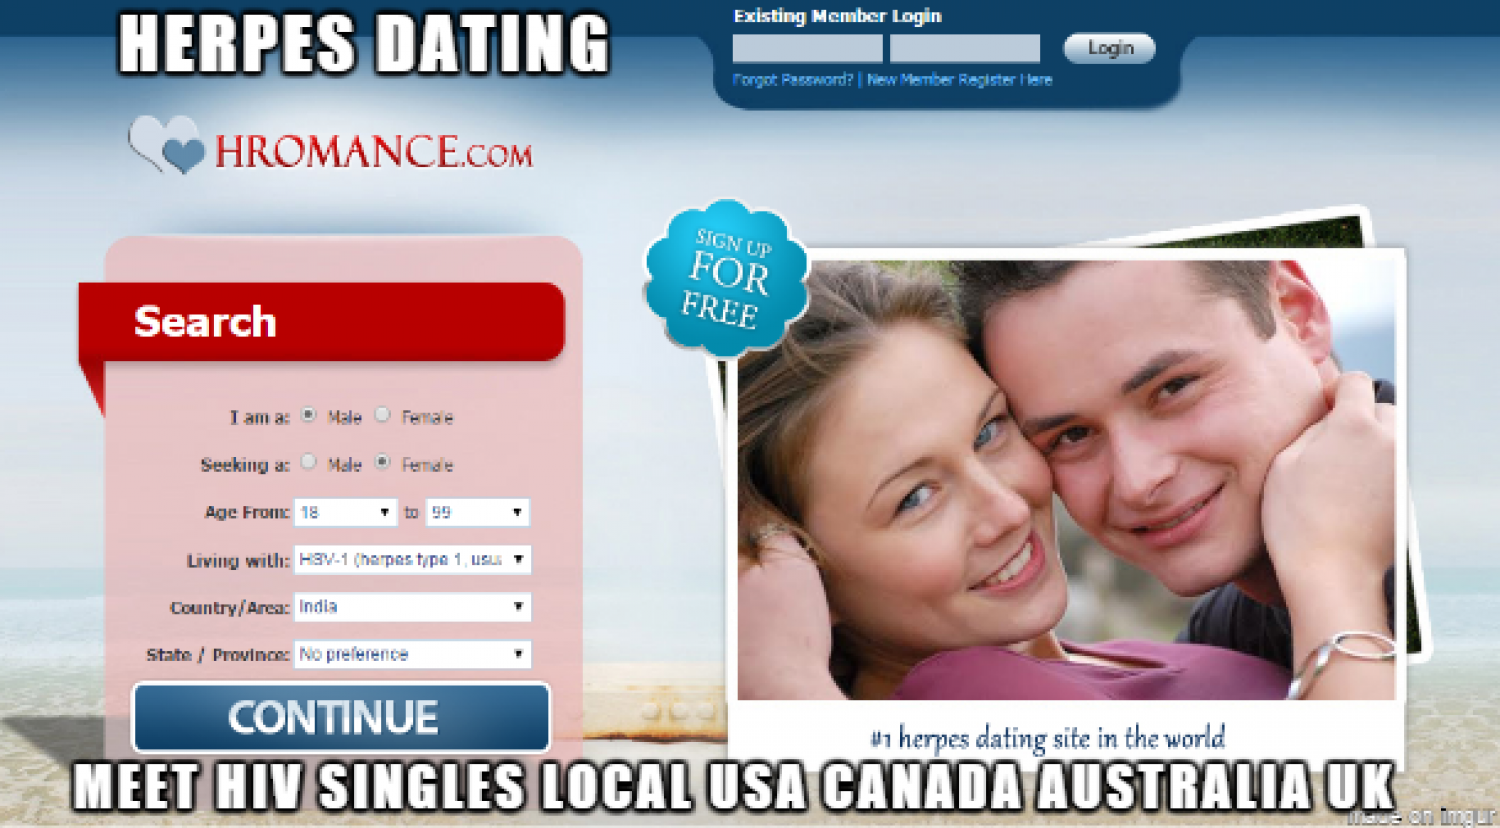 Australia's number 1 dating site